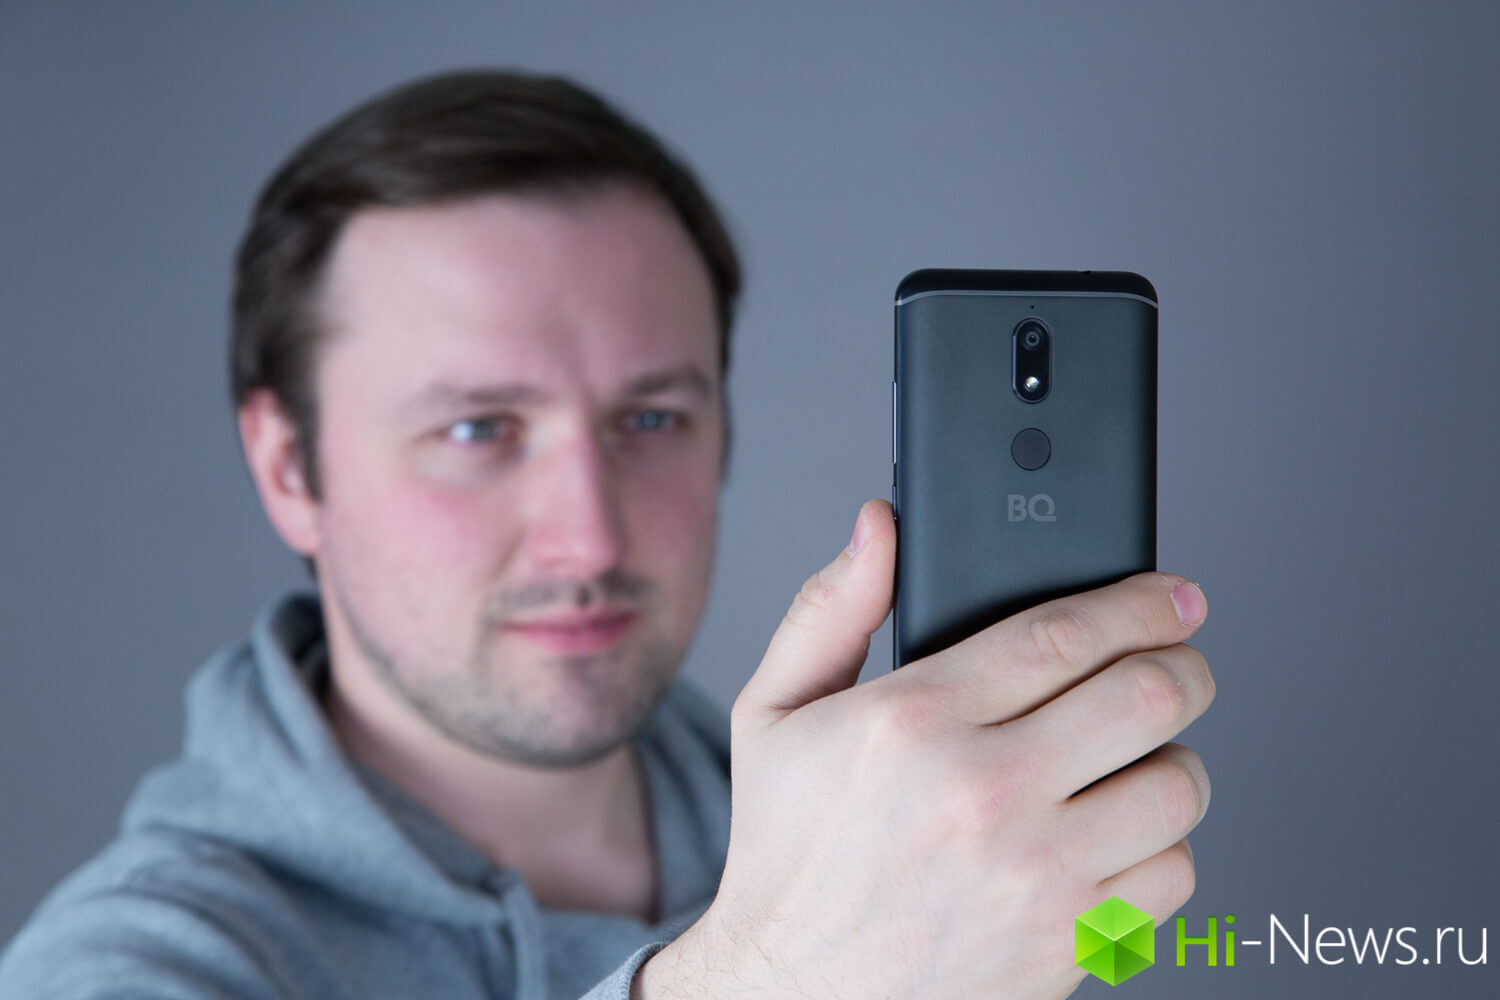 Review for smartphone BQ Space X: it would seem, what does Elon Musk?